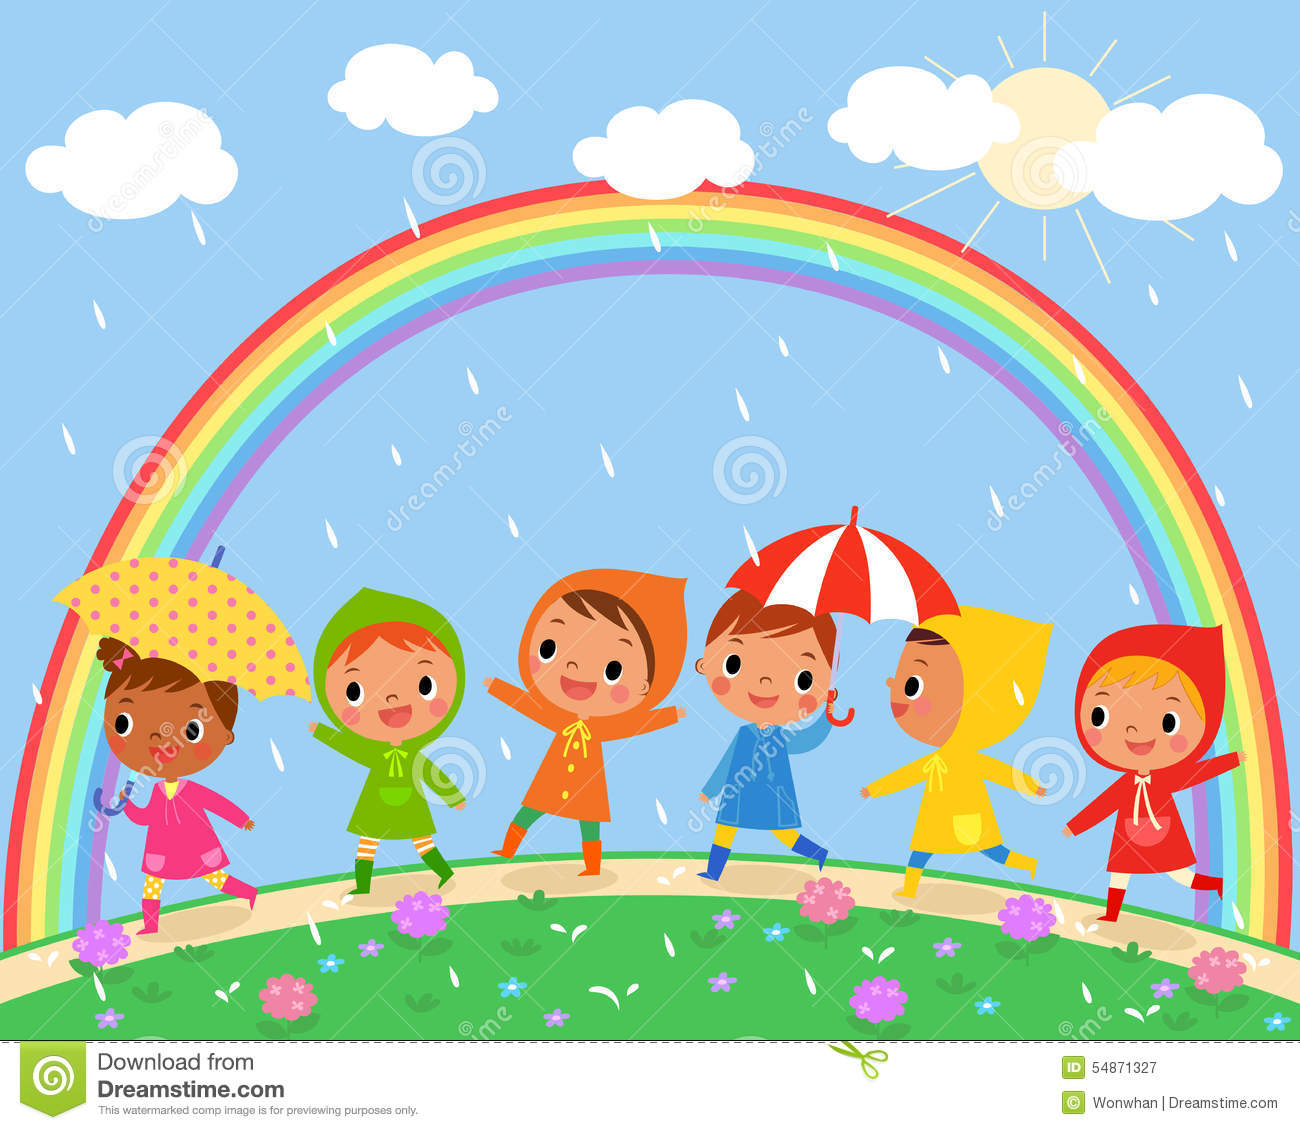 Children Walk On A Beautiful Rainy Day Stock Vector  Image: 54871327